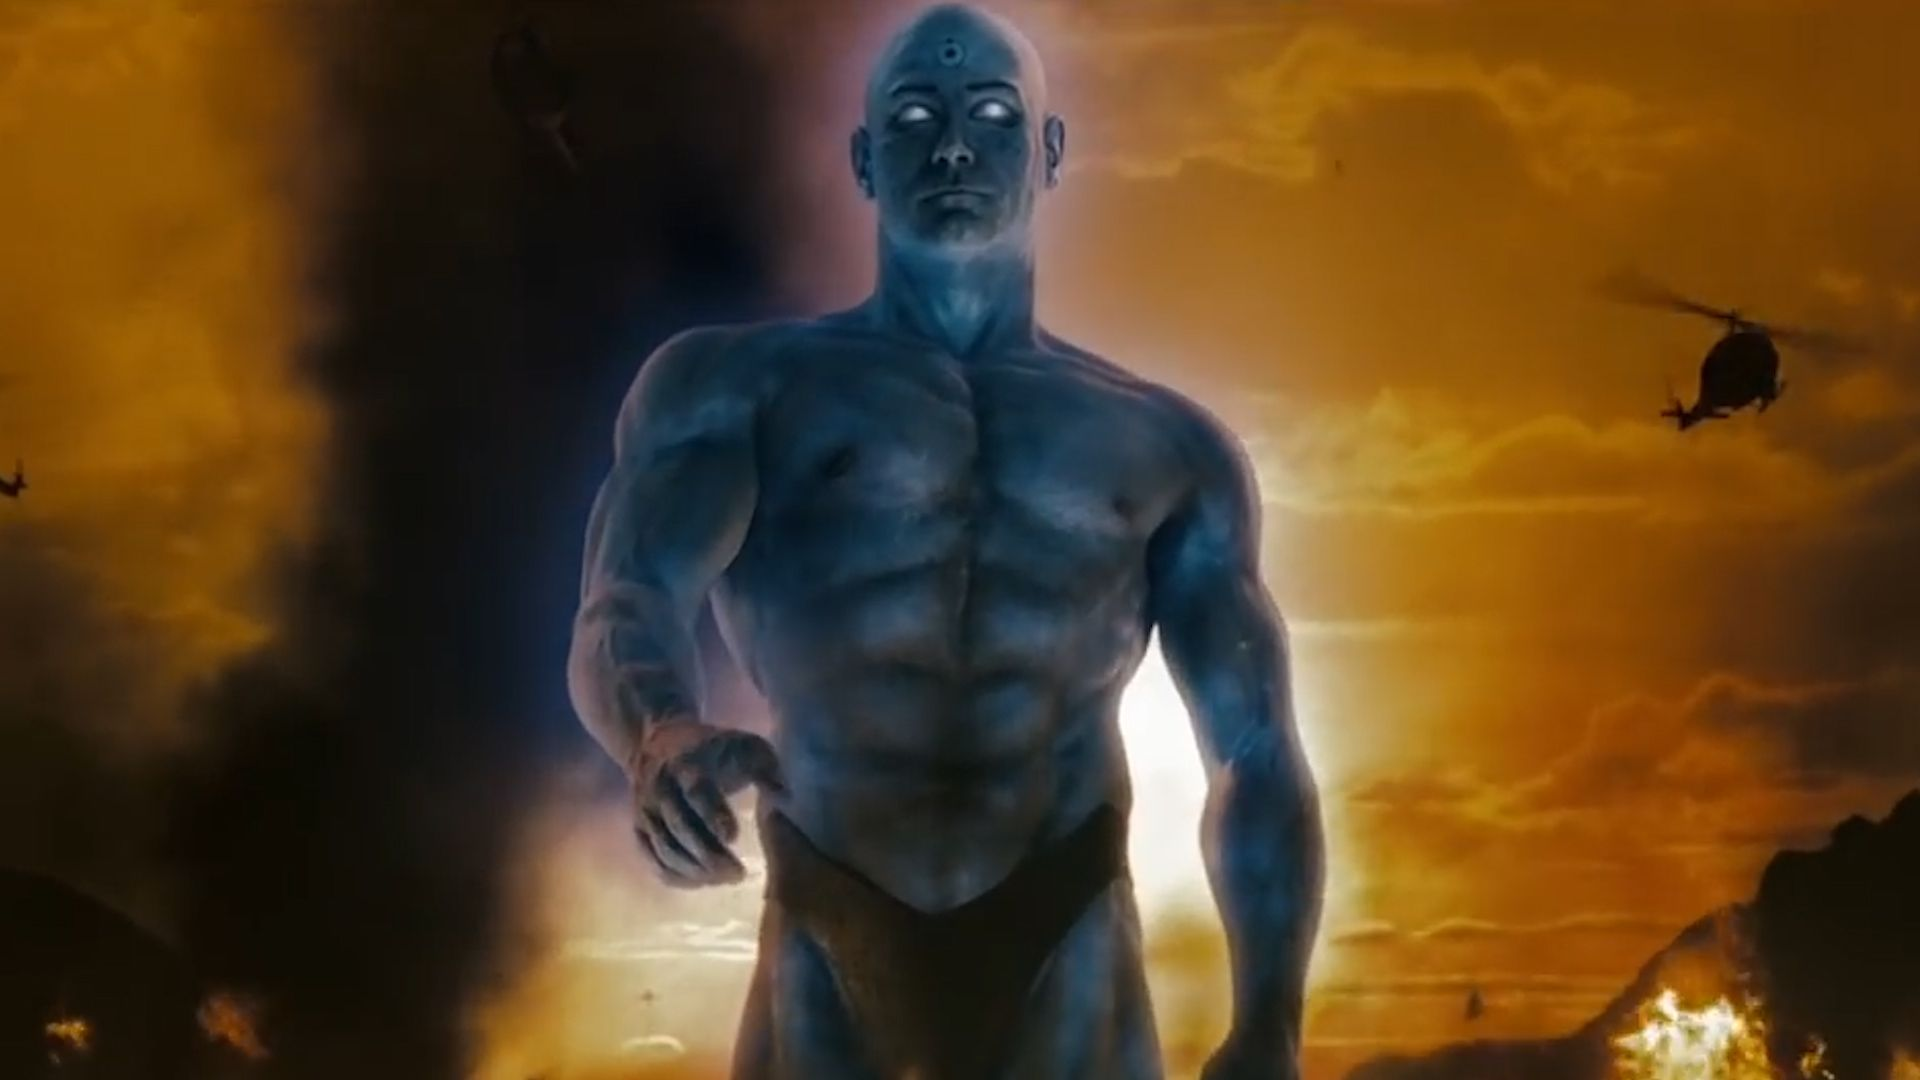 Is Ozymandias Alive or Dead? HBO's Watchmen Series Premiere Says Both.